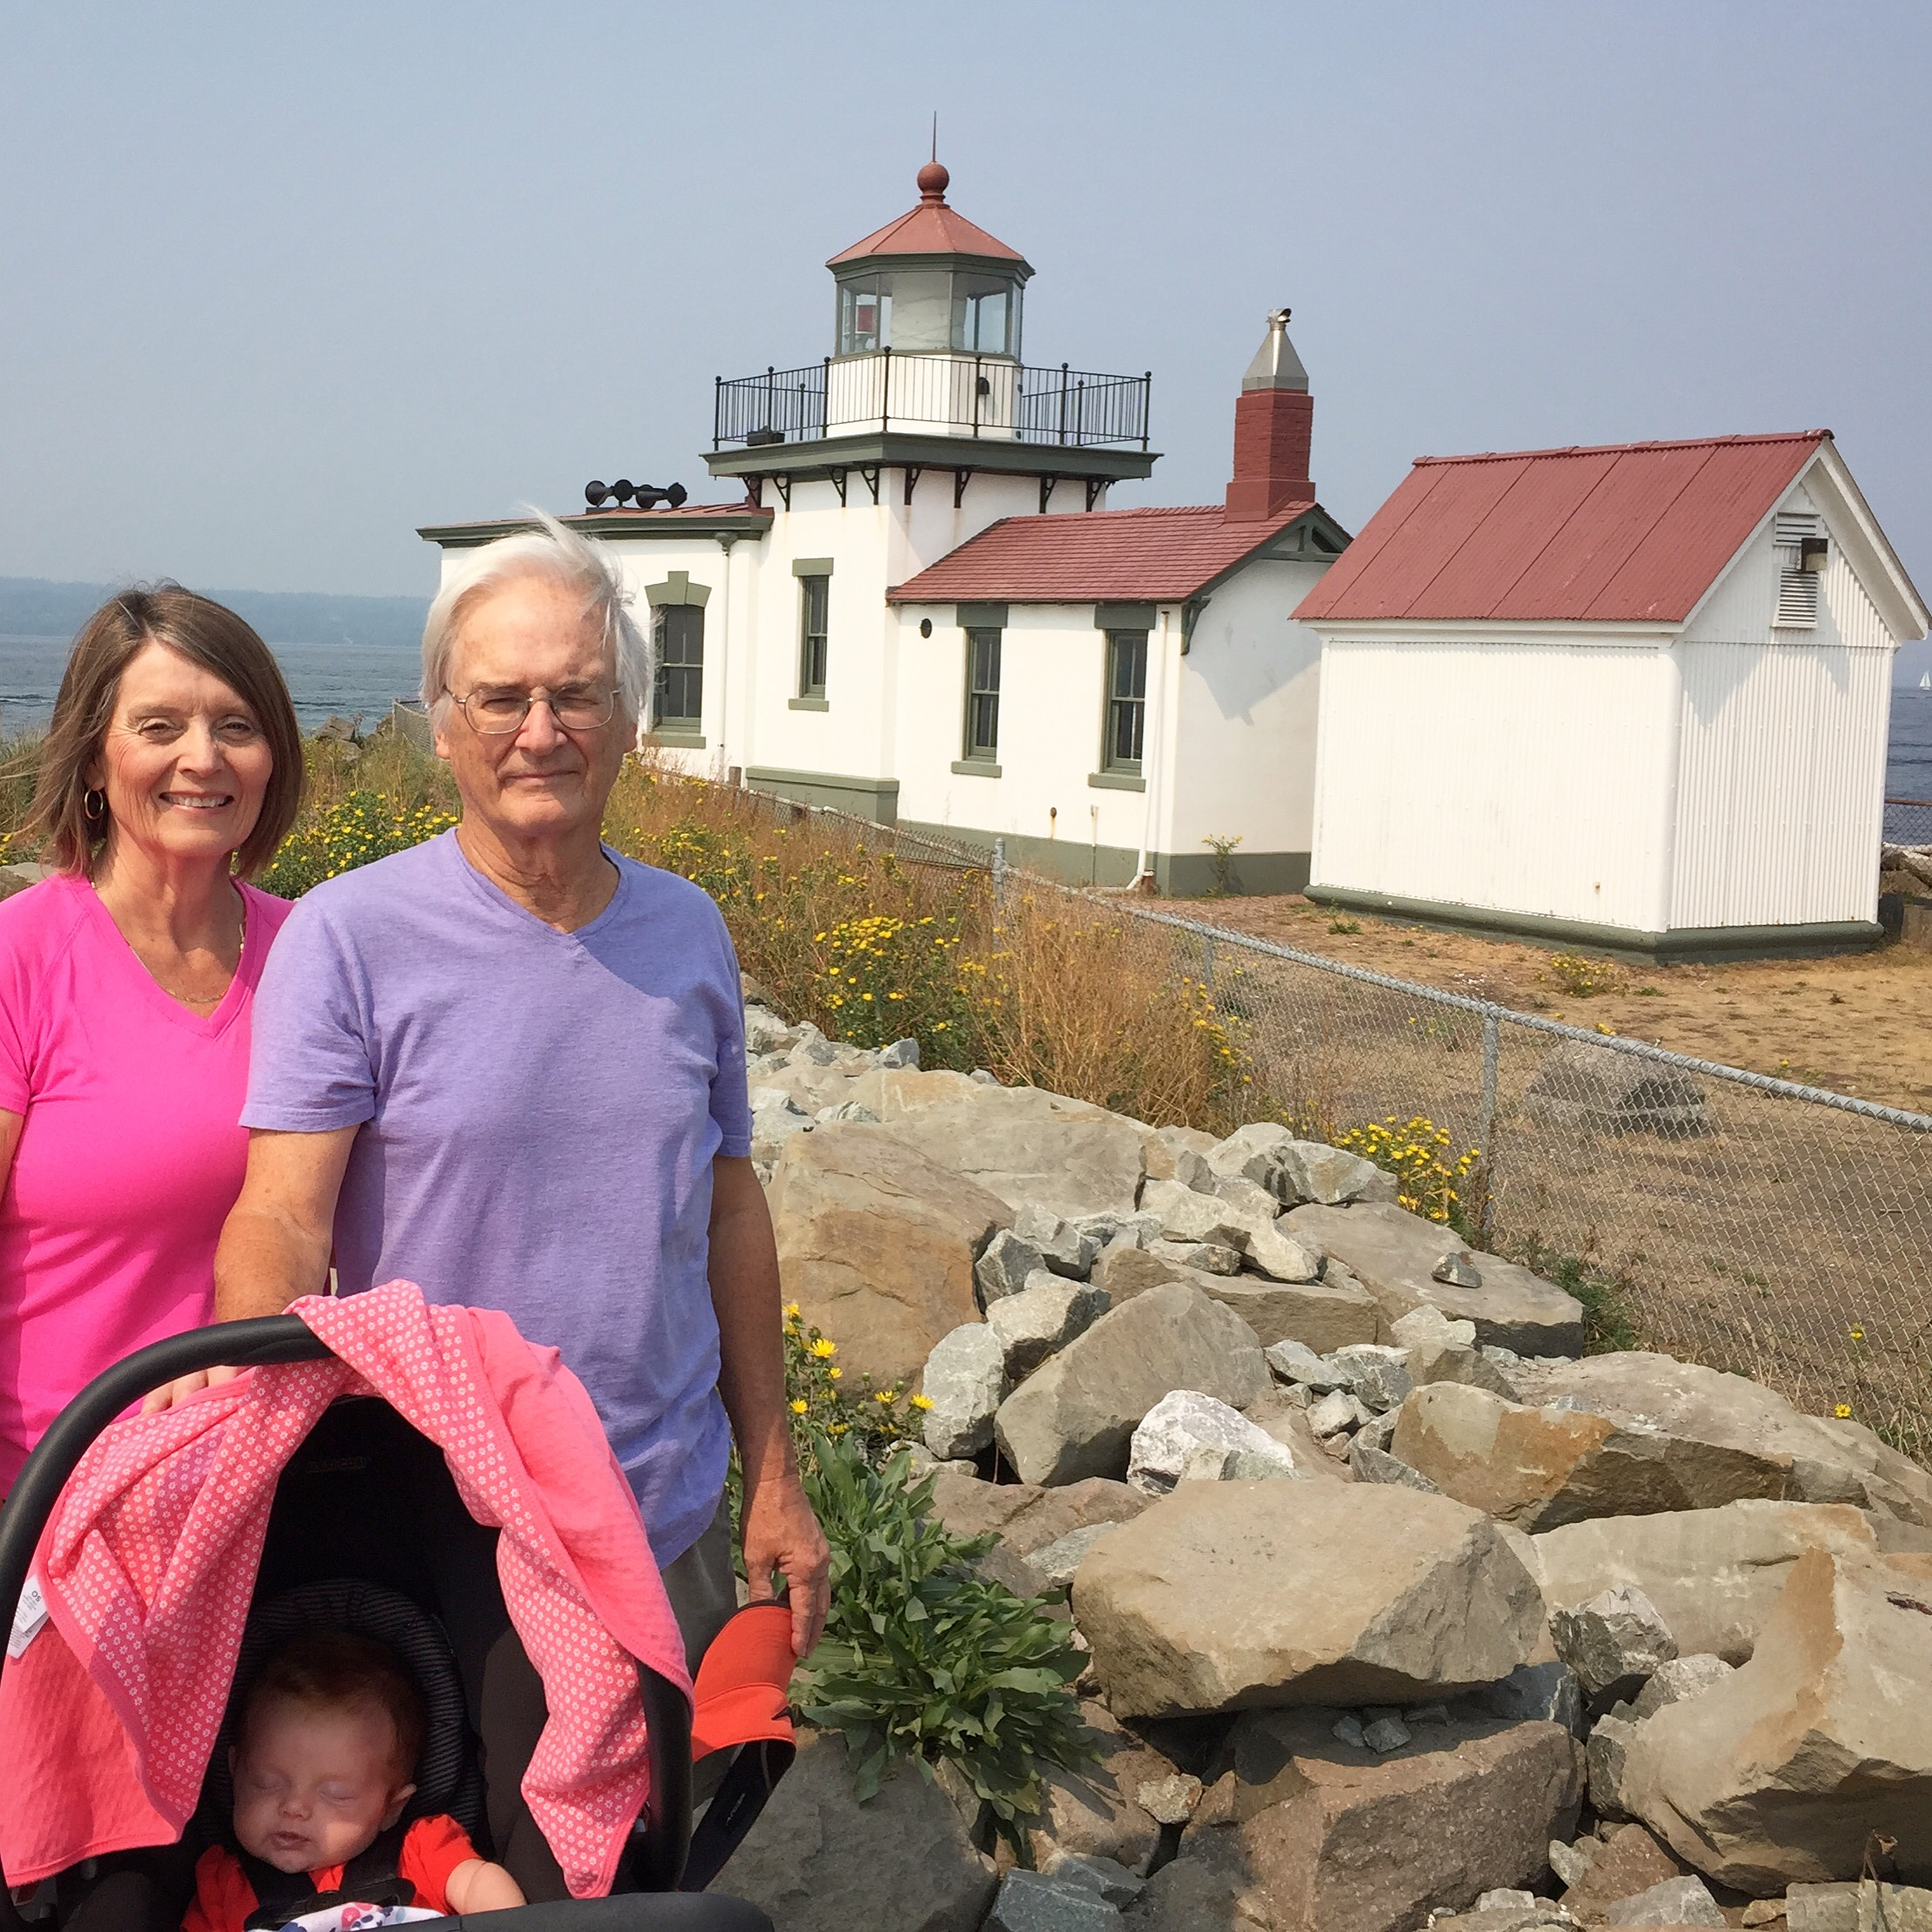 My mom and Dad with Stella by the Discovery Park Lighthouse